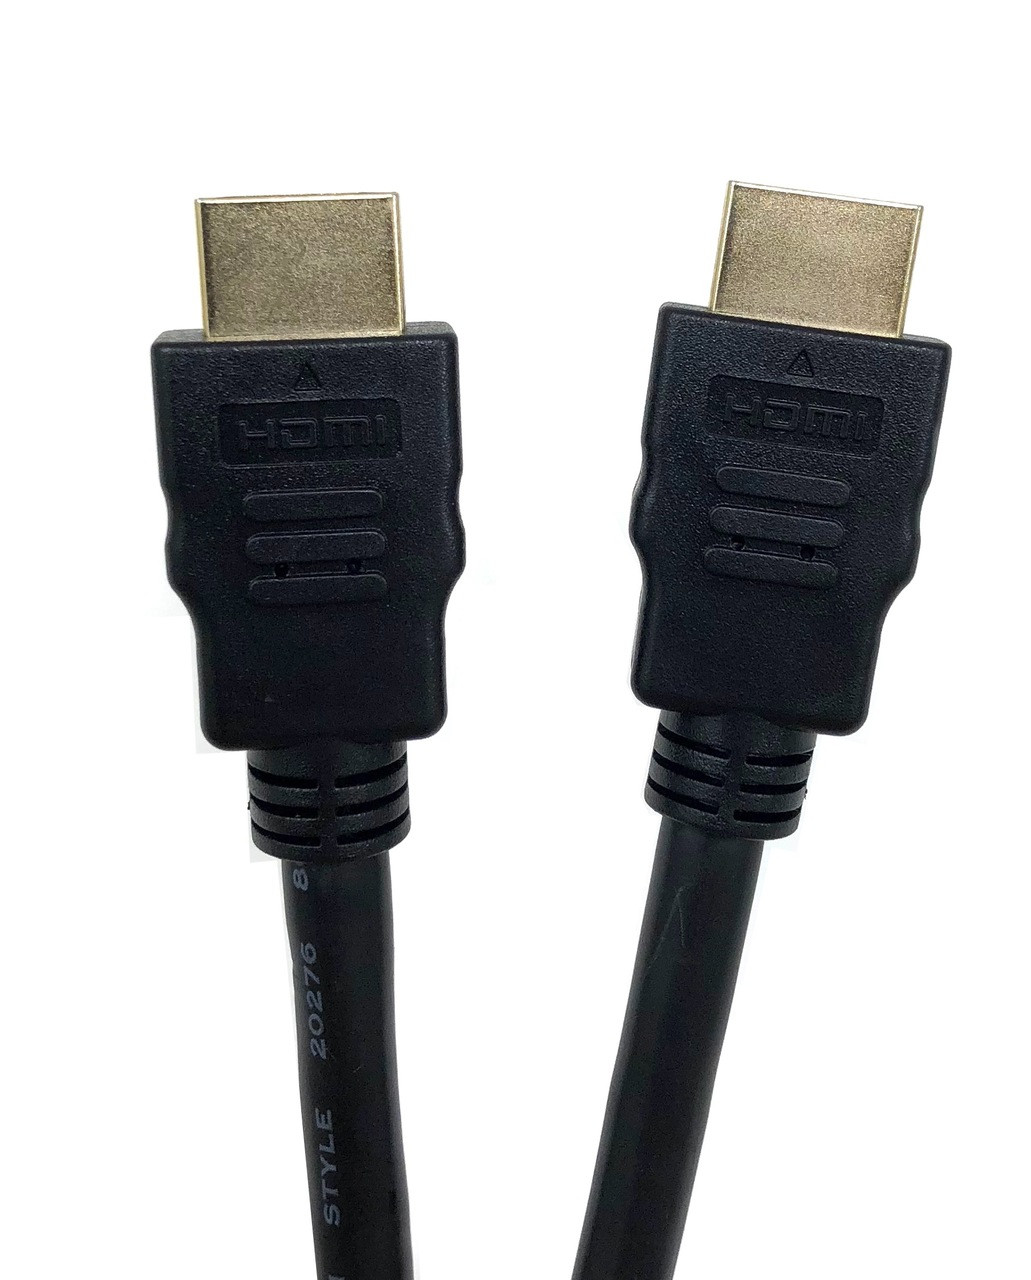 3ft High Speed HDMI M/M Cable with Ethernet